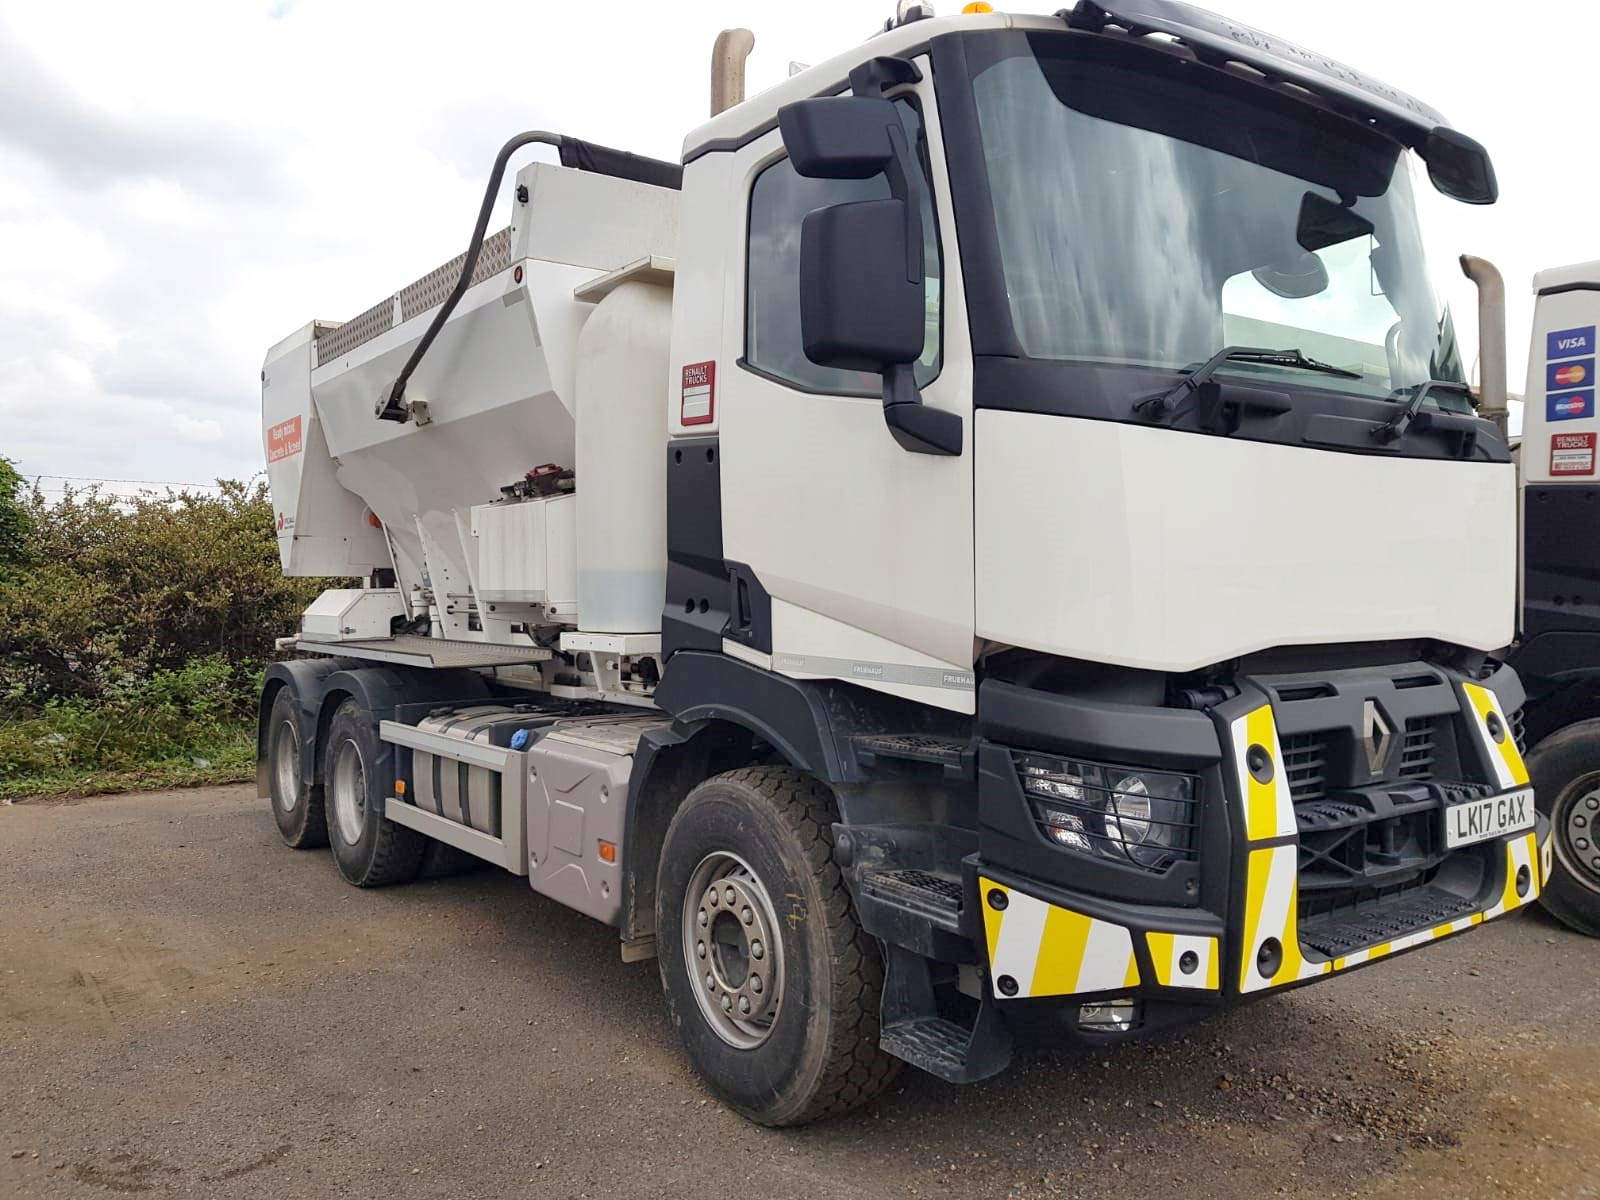 Used Volumetric Truck for sale from Premier MBP